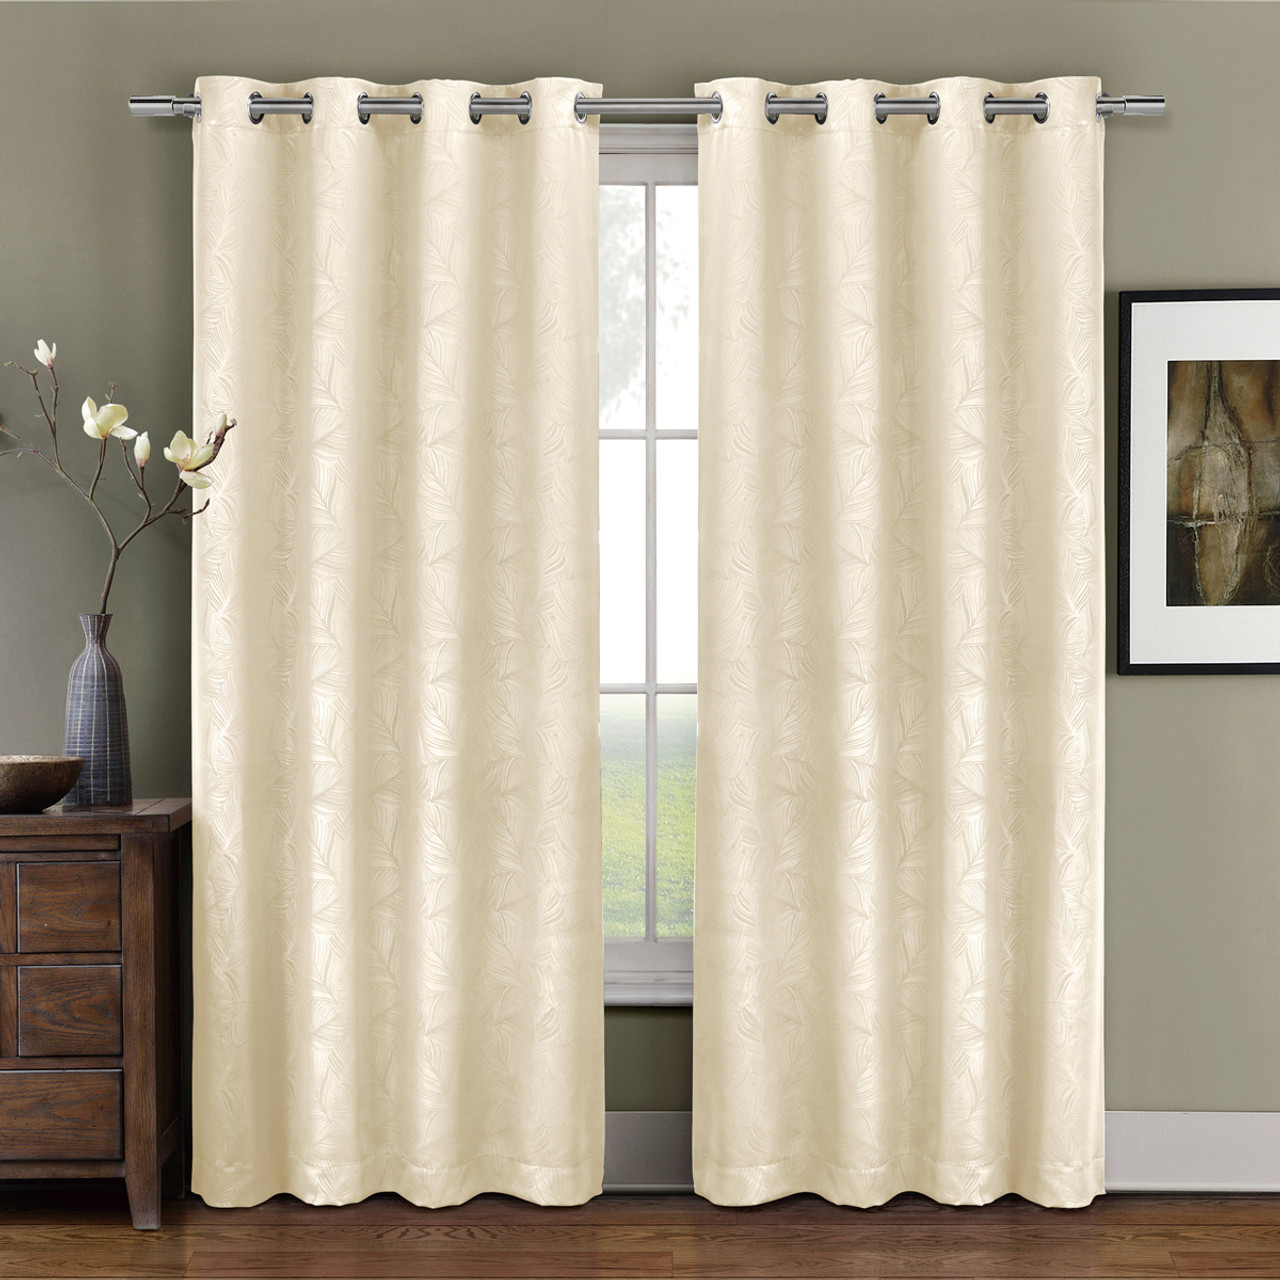 ... Prairie Contemporary Leafy Design Blackout Grommet Curtain Panel Ivory  ...